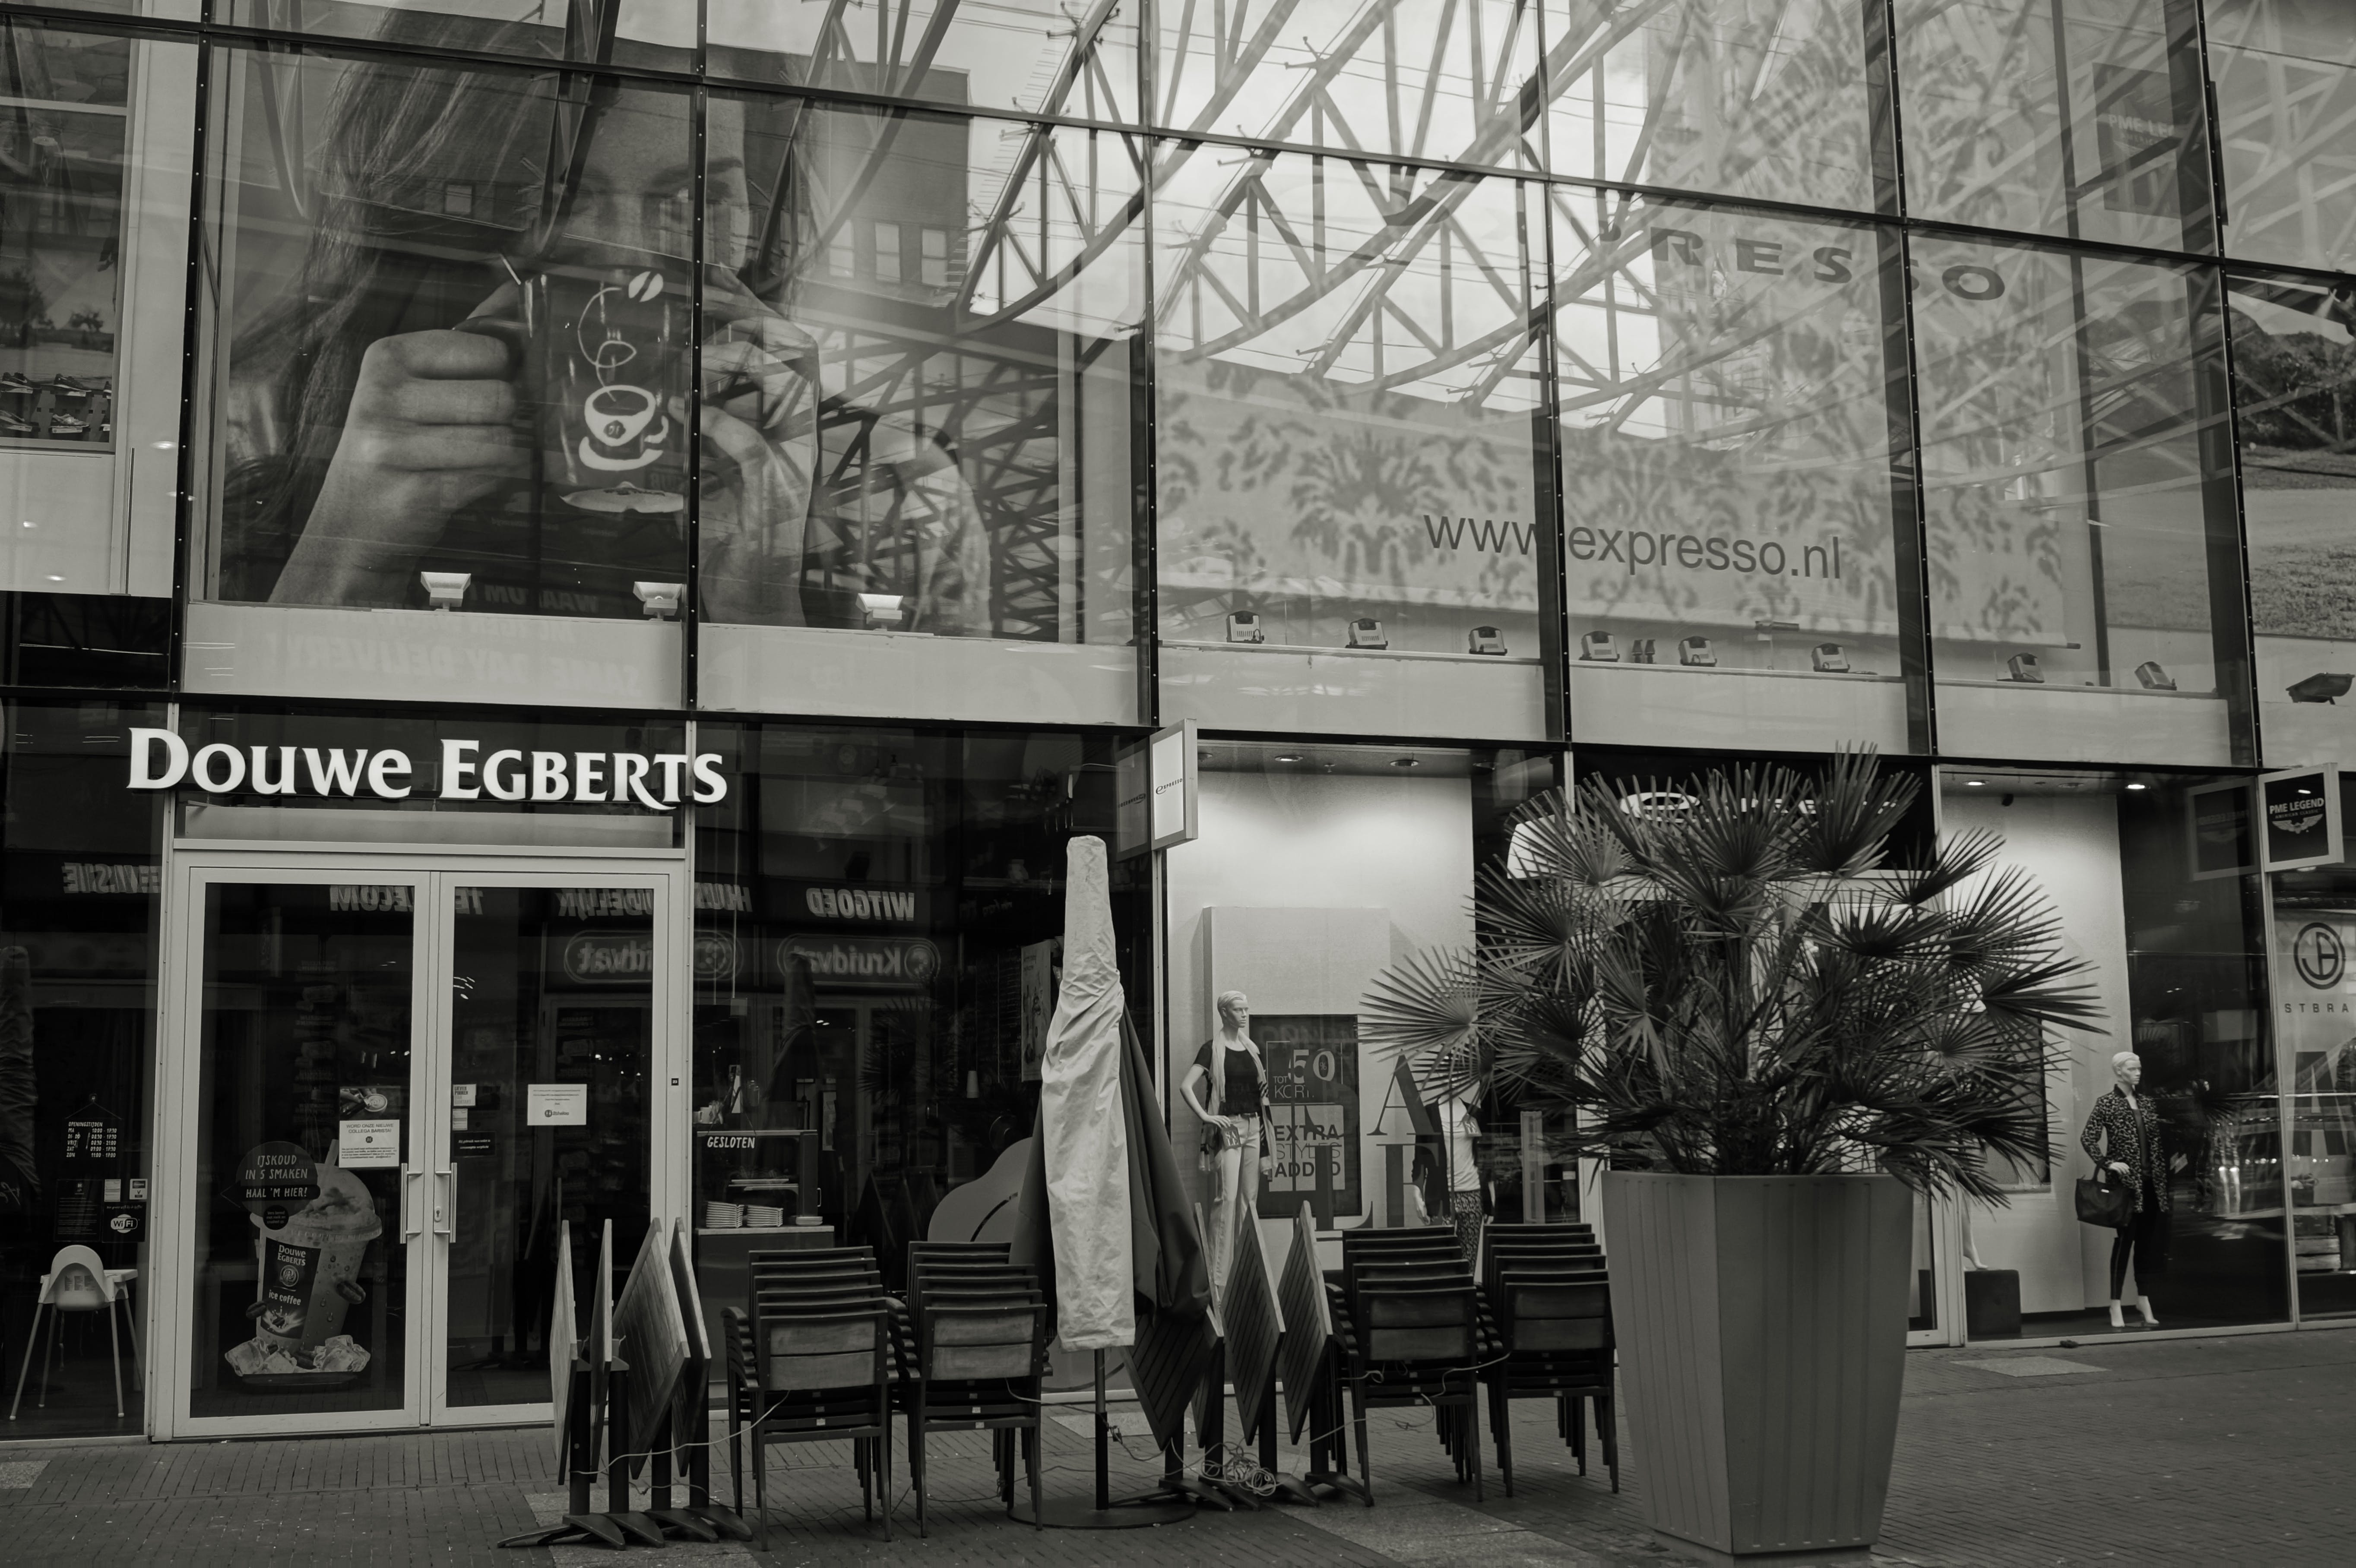 Grayscale Photography of Douwe Egbert's Restaurant